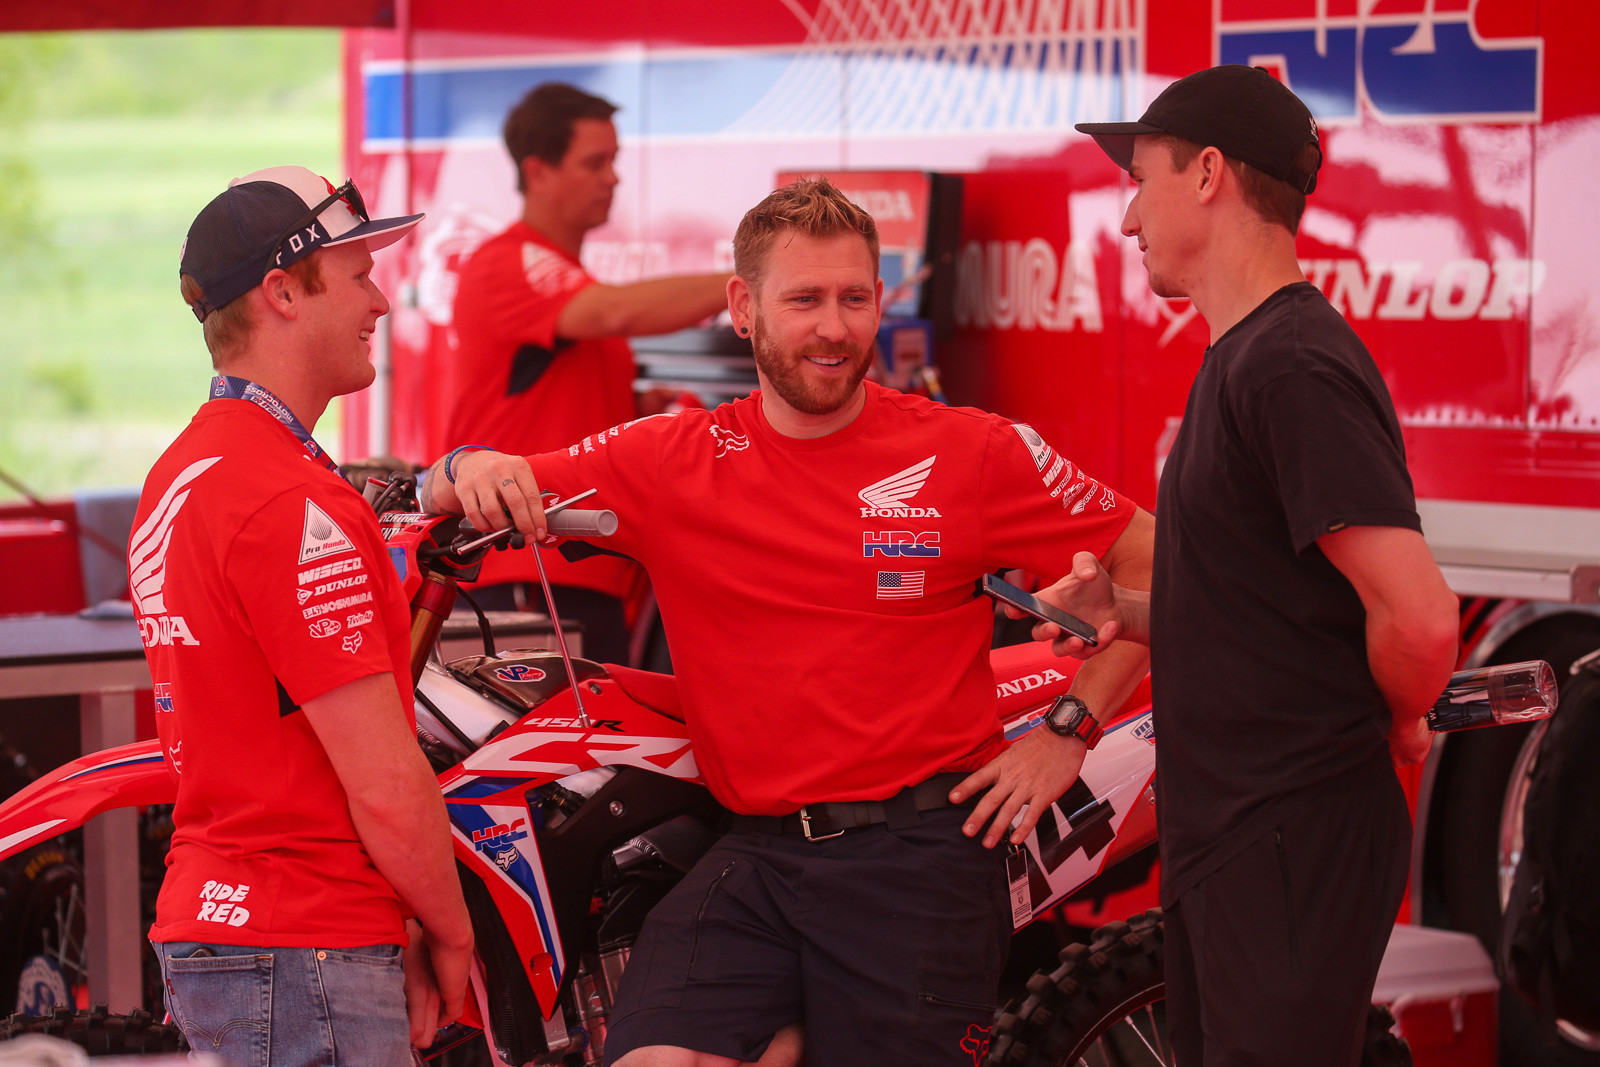 Trey Canard, Jordan Troxell, and Cole Seely chat before practice.